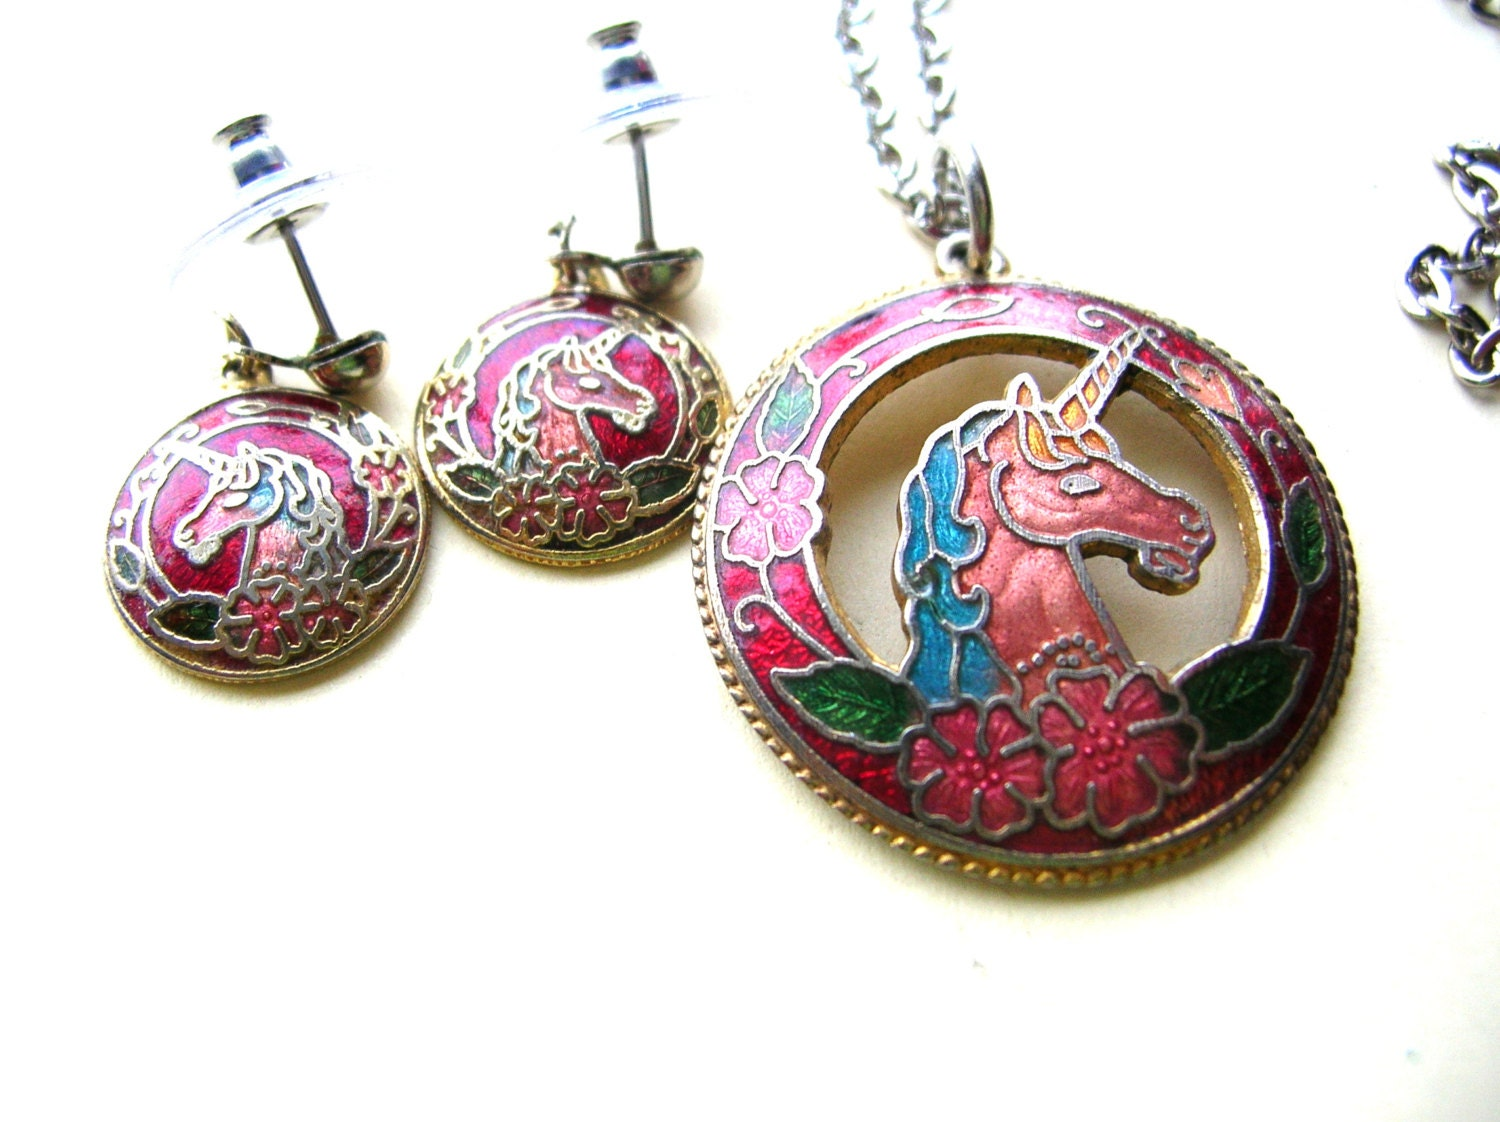 Vintage Enamel Unicorn Earrings And Necklace Set 80s Unicorn. Coral Rose Brooch. Ostrich Feather Brooch. Iridescent Brooch. Embroidery Brooch. Bandeau Brooch. Three Strand Brooch. Crystal Flower Brooch. Woman Saree Brooch